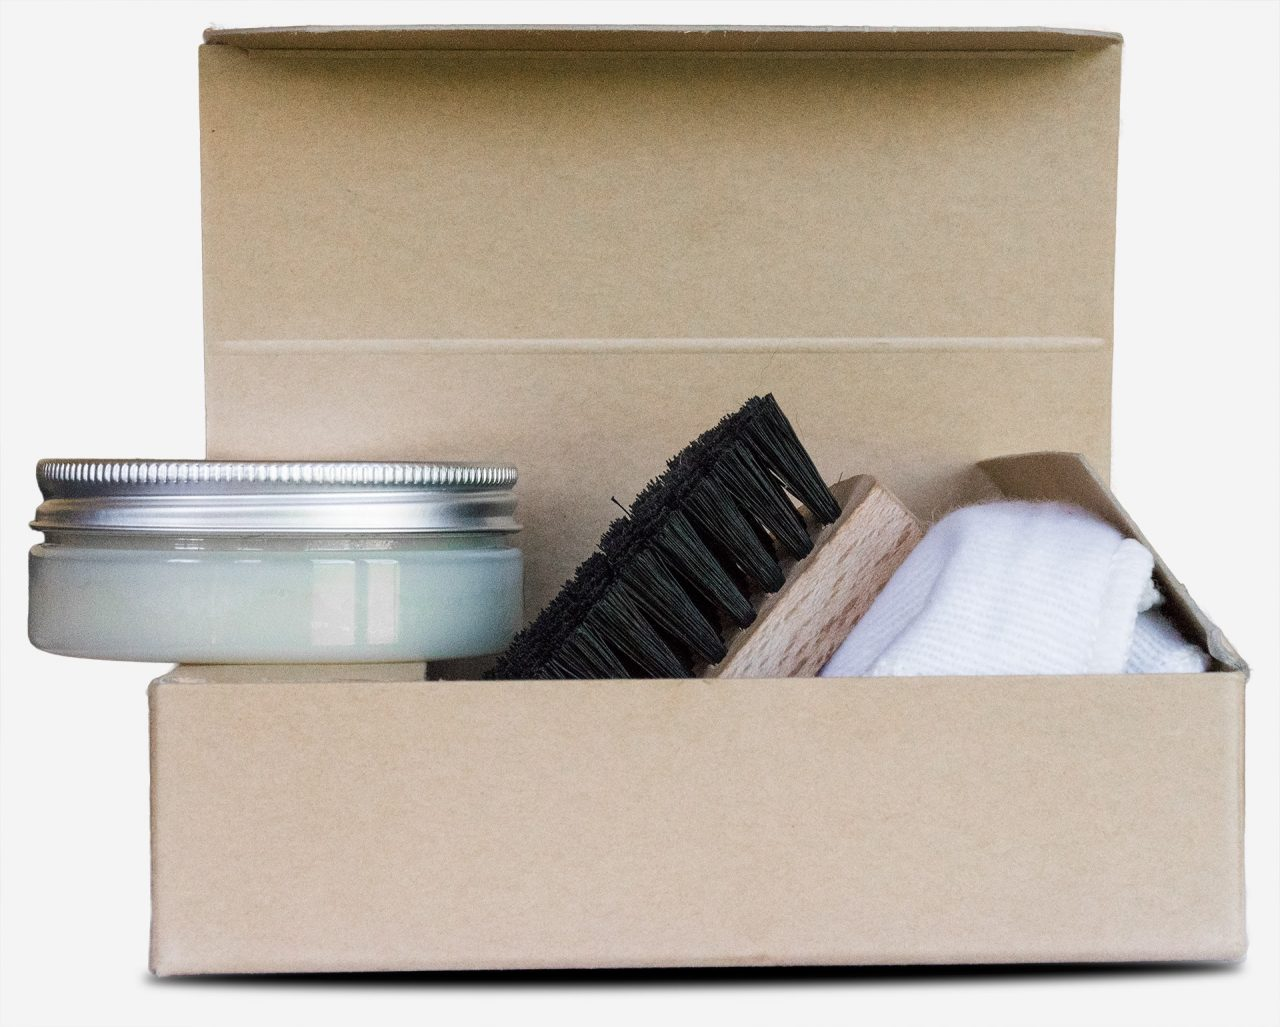 Wax for vegetable-tanned leather in care kit with brush and soft cloth.